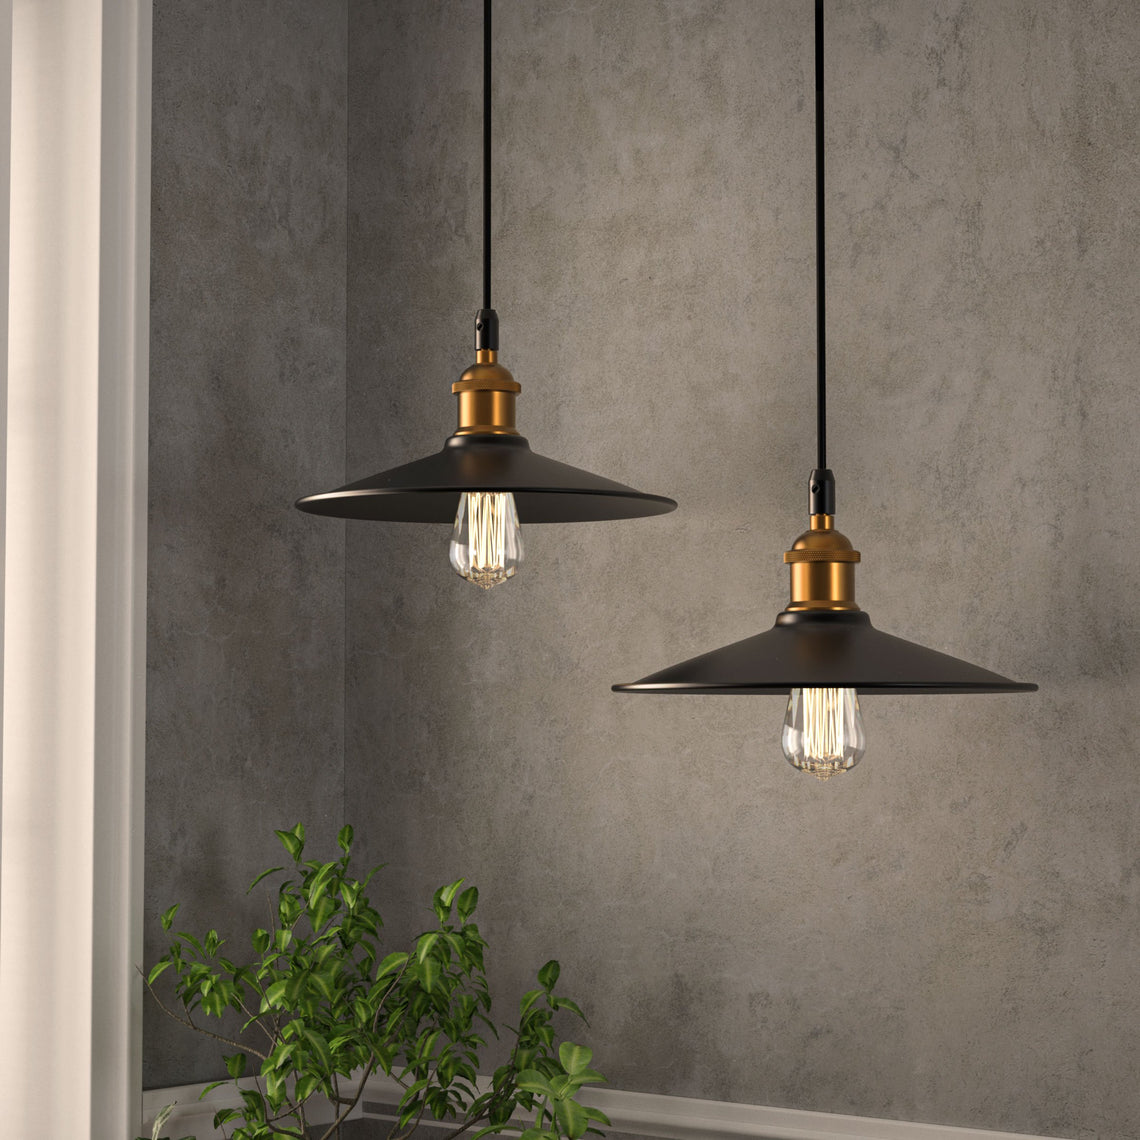 Industrial Style Matte Black Pendant Light Fixture, E26 Base, Antique Brass and Matte Black Finish, UL Listed